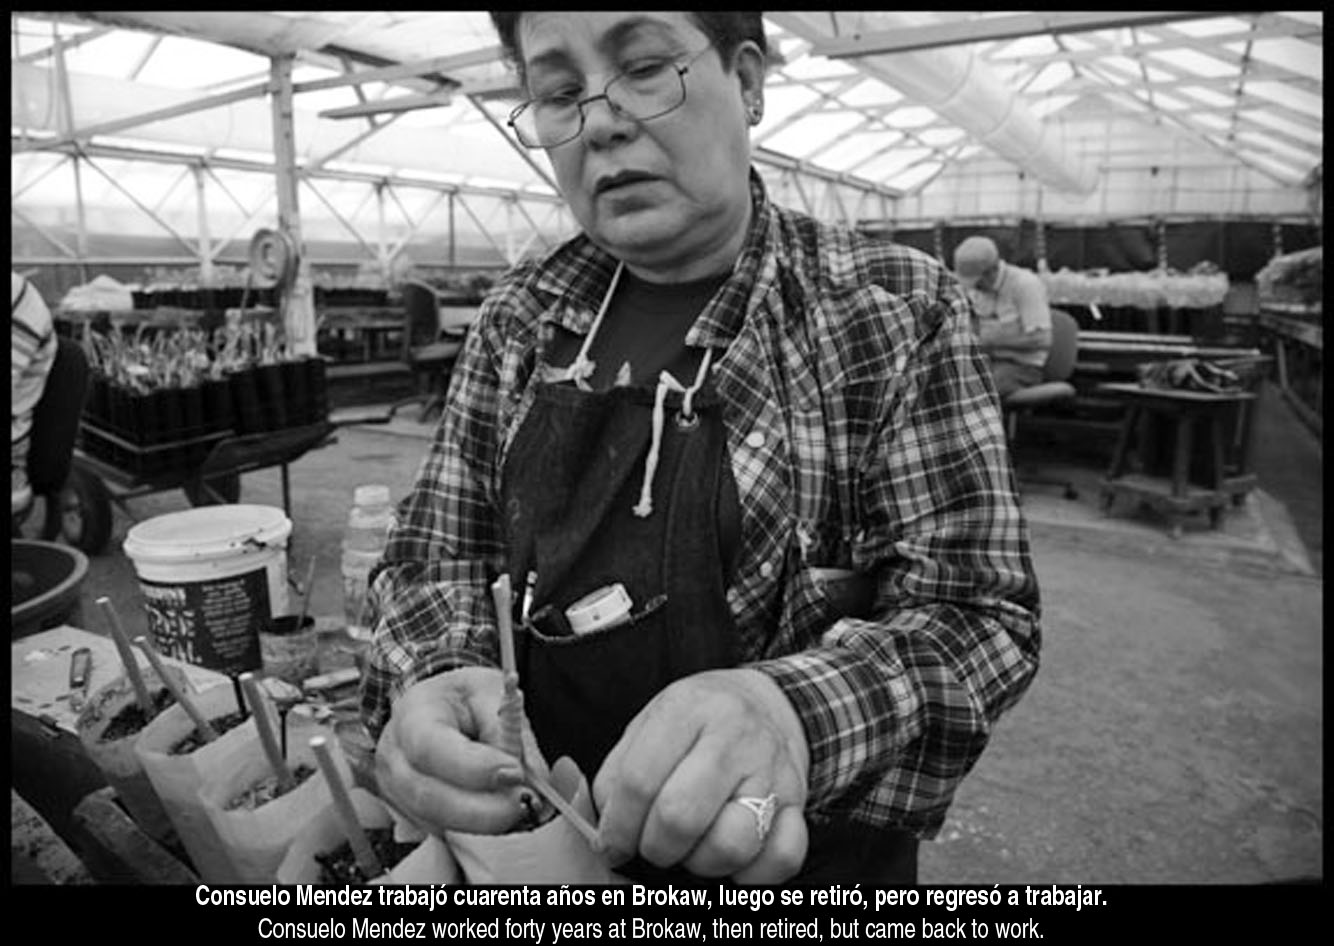 SATICOY, CA - 18APRIL12 - Immigrant farm workers graft seedlings for avocado, citrus and other fruit trees at Brokaw Nursery, which supplies them to orchards all over the world. Most workers come from Mexico, but a few are from El Salvador.  Pictured:  Consuelo Mendez worked forty years at Brokaw, then retired, but came back to work because Social Security benefits didn't cover her bills.  Copyright David Bacon